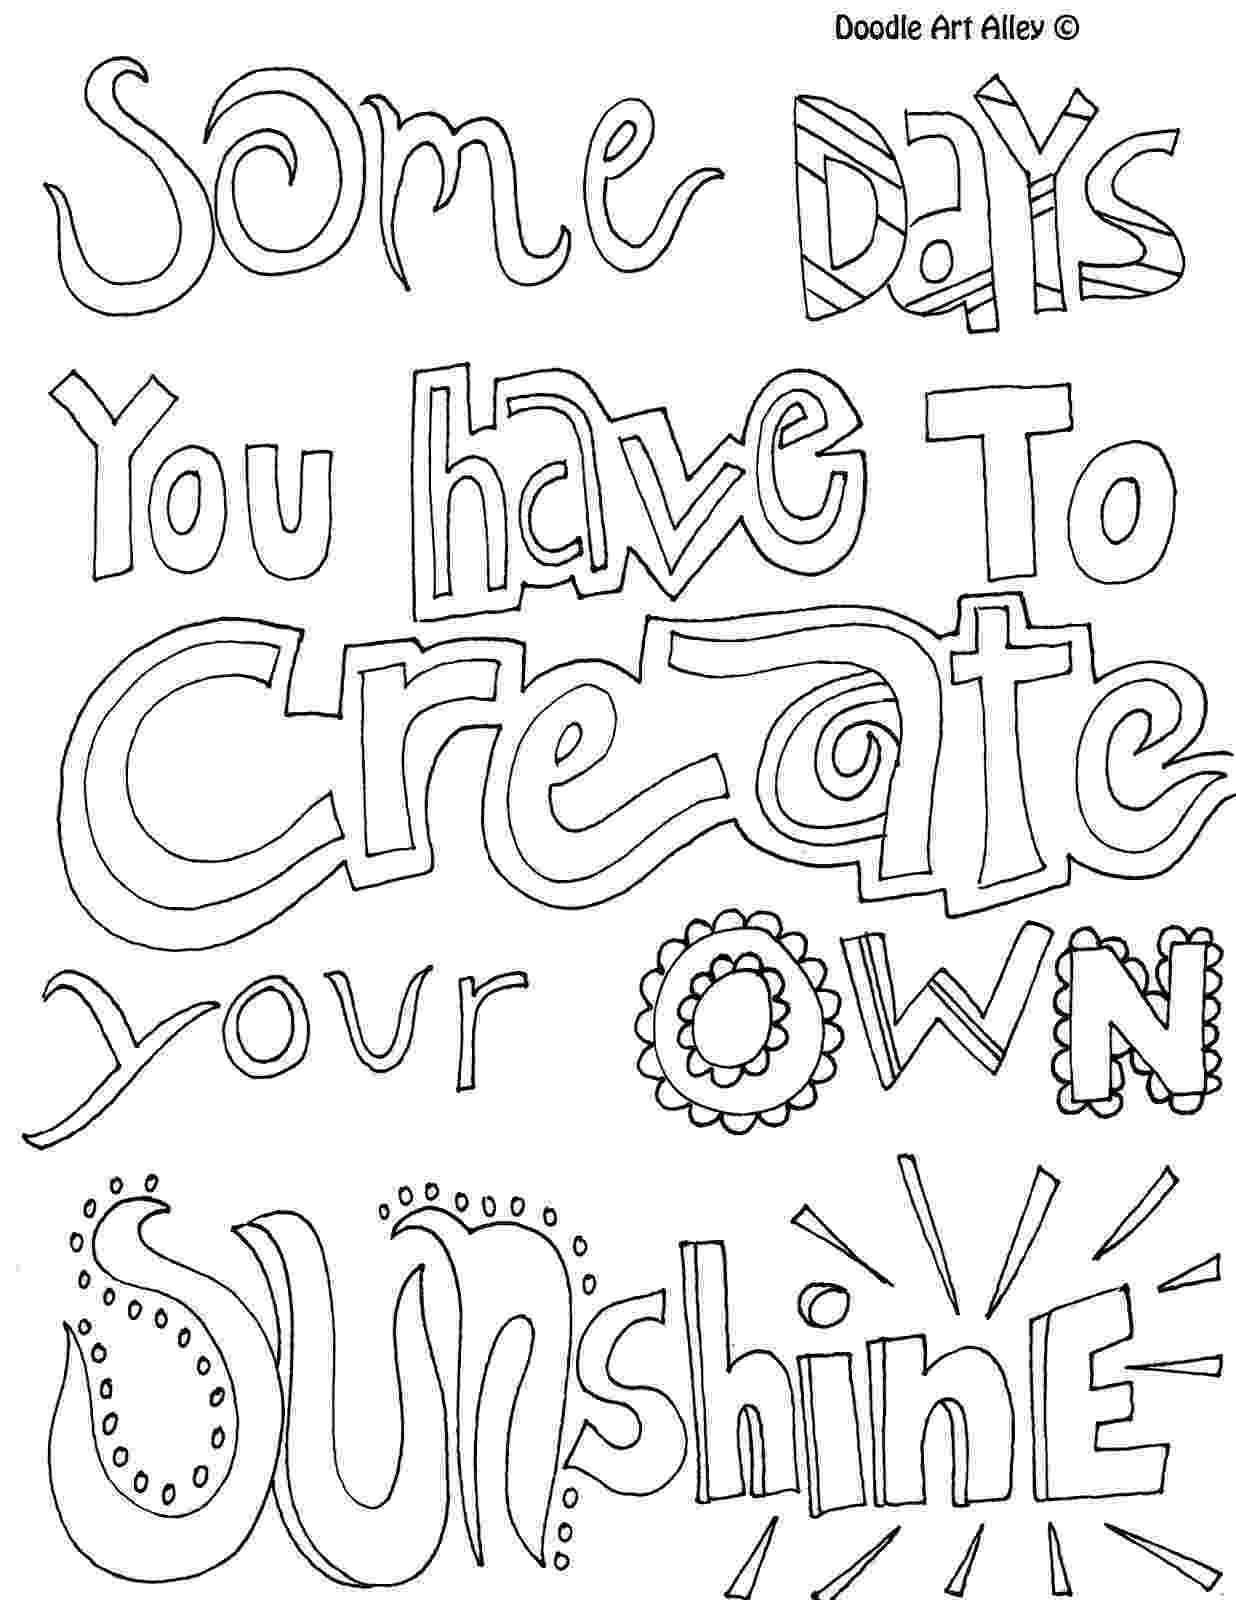 free printable quote coloring pages for adults adult coloring page quote download i need this in my life free adults pages printable for coloring quote